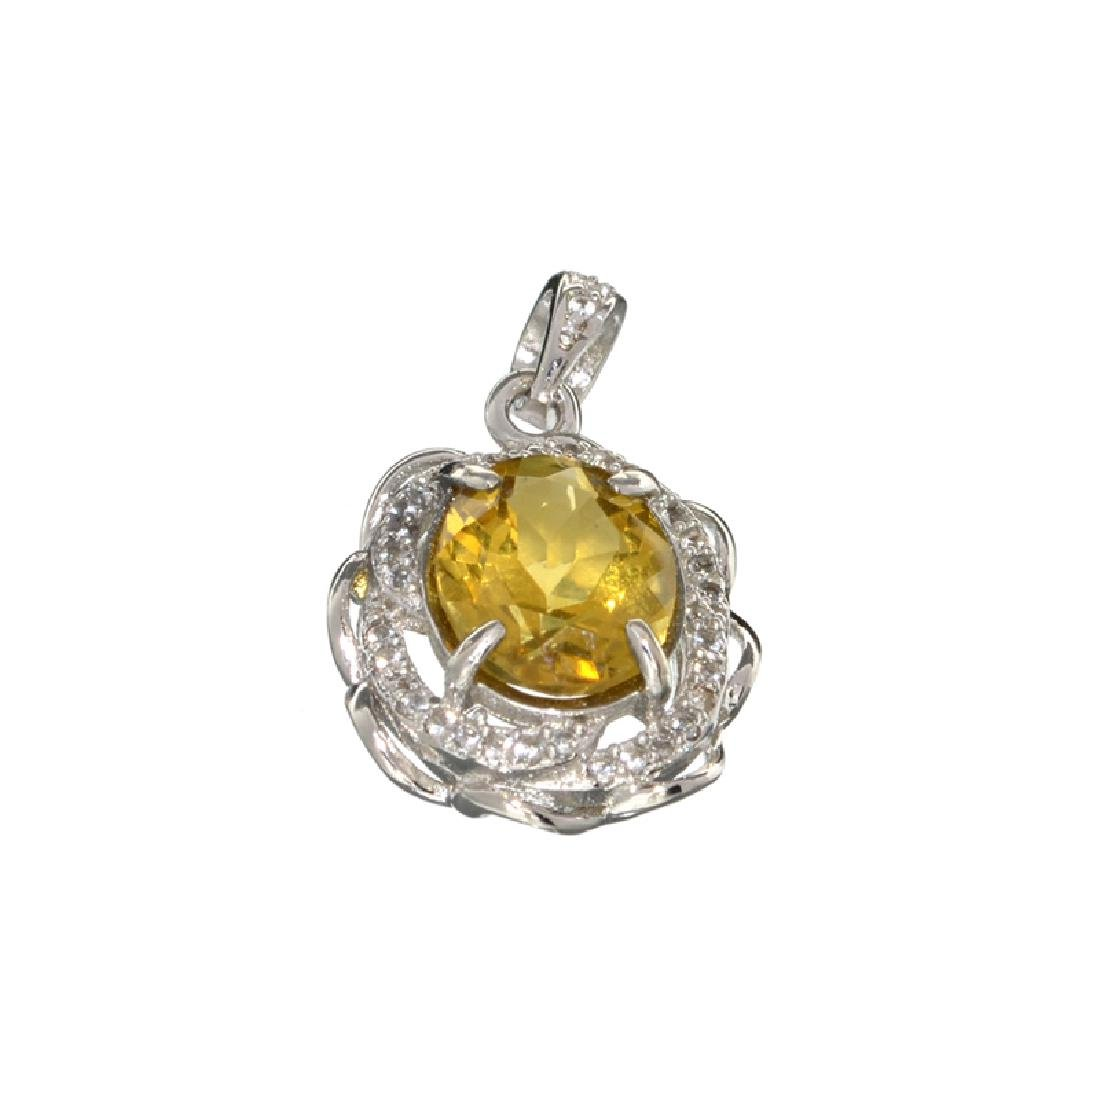 APP: 0.9k Fine Jewelry 3.00CT Oval Cut Citrine/White